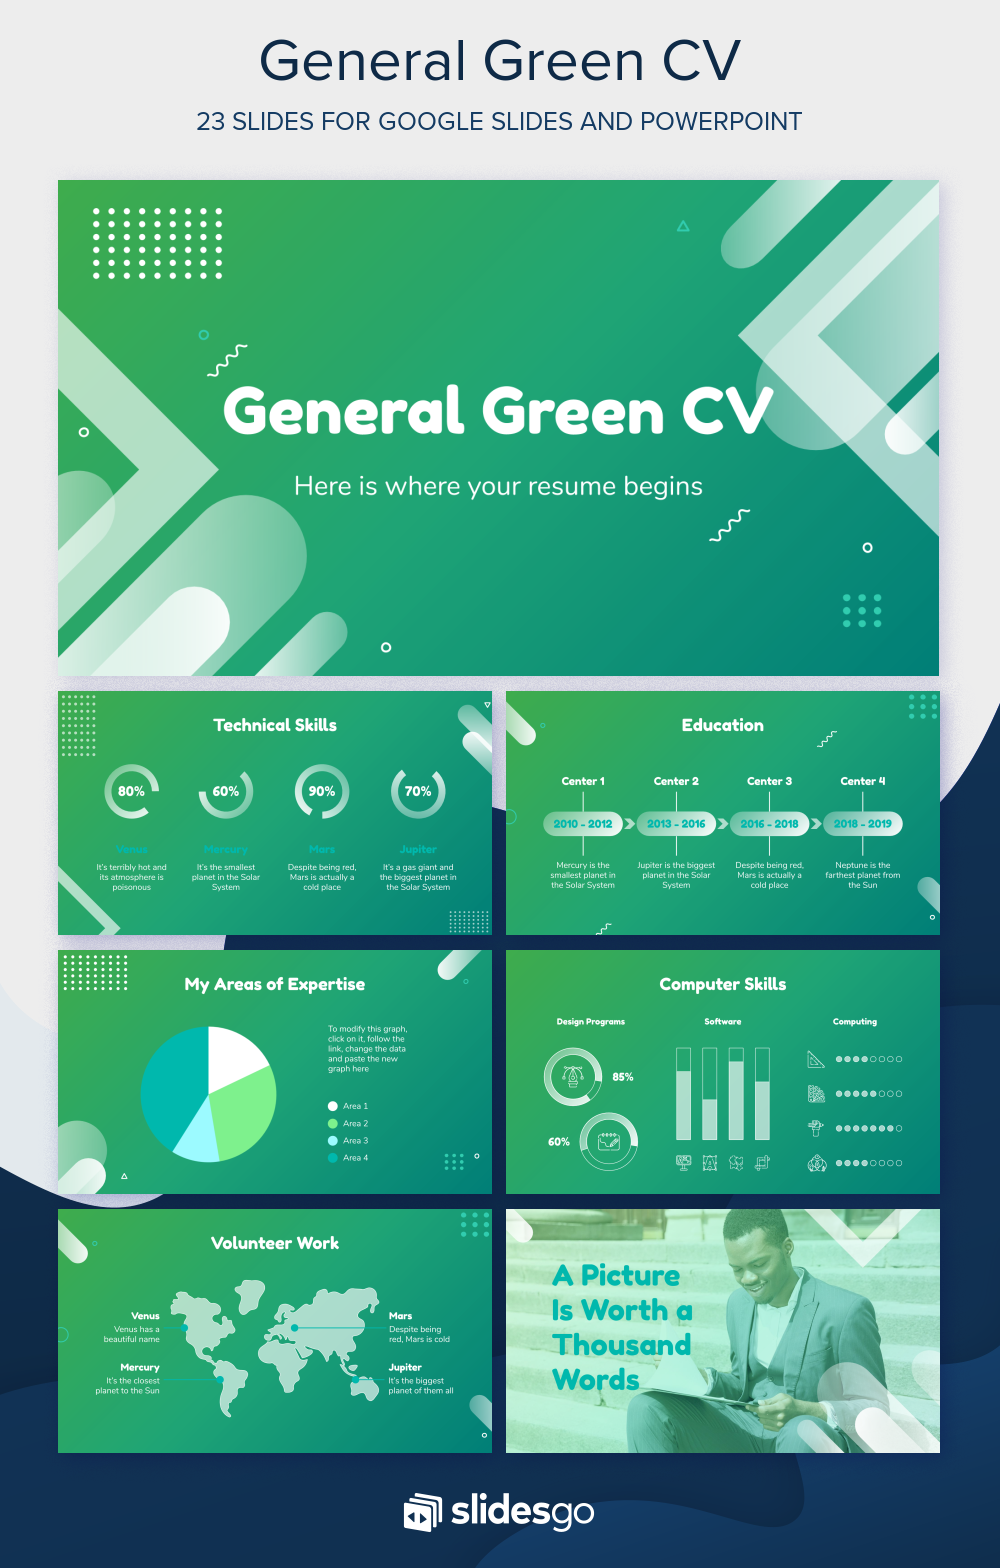 Boost Your Chances With This General Green Cv That Brings Your Resume To Life Works With Google Slides And Powerpoint Powerpoint Google Slides Themes Good Cv